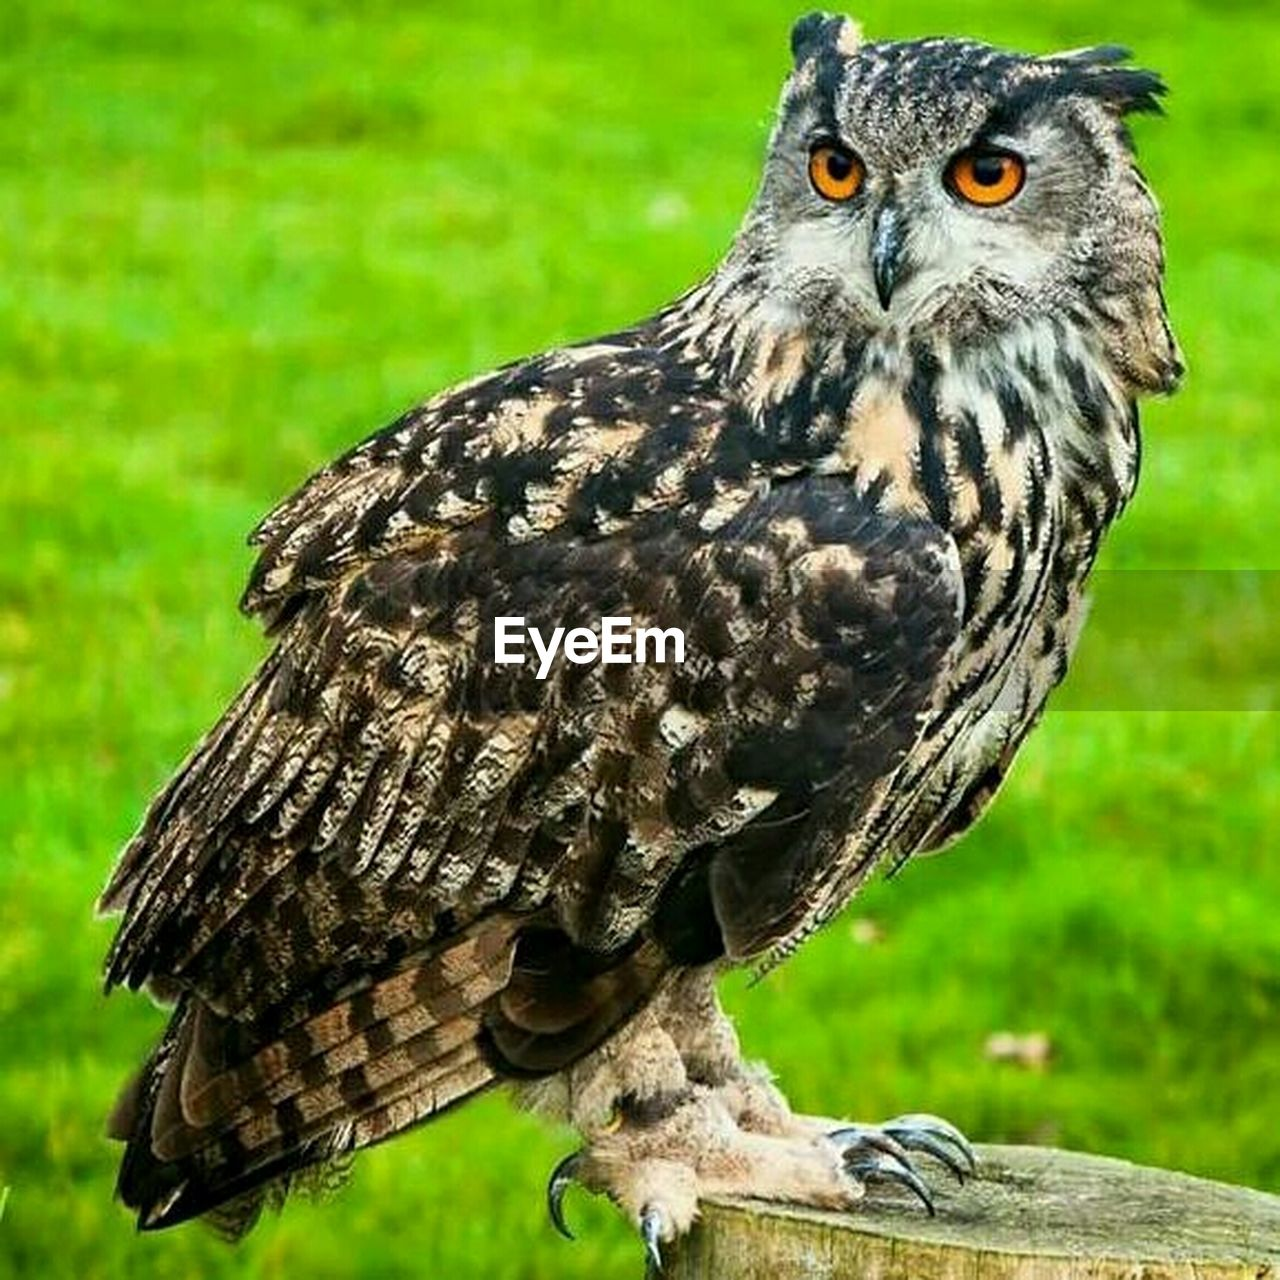 bird, one animal, animal wildlife, animals in the wild, animal themes, bird of prey, focus on foreground, grass, day, outdoors, close-up, nature, perching, owl, beak, looking at camera, no people, portrait